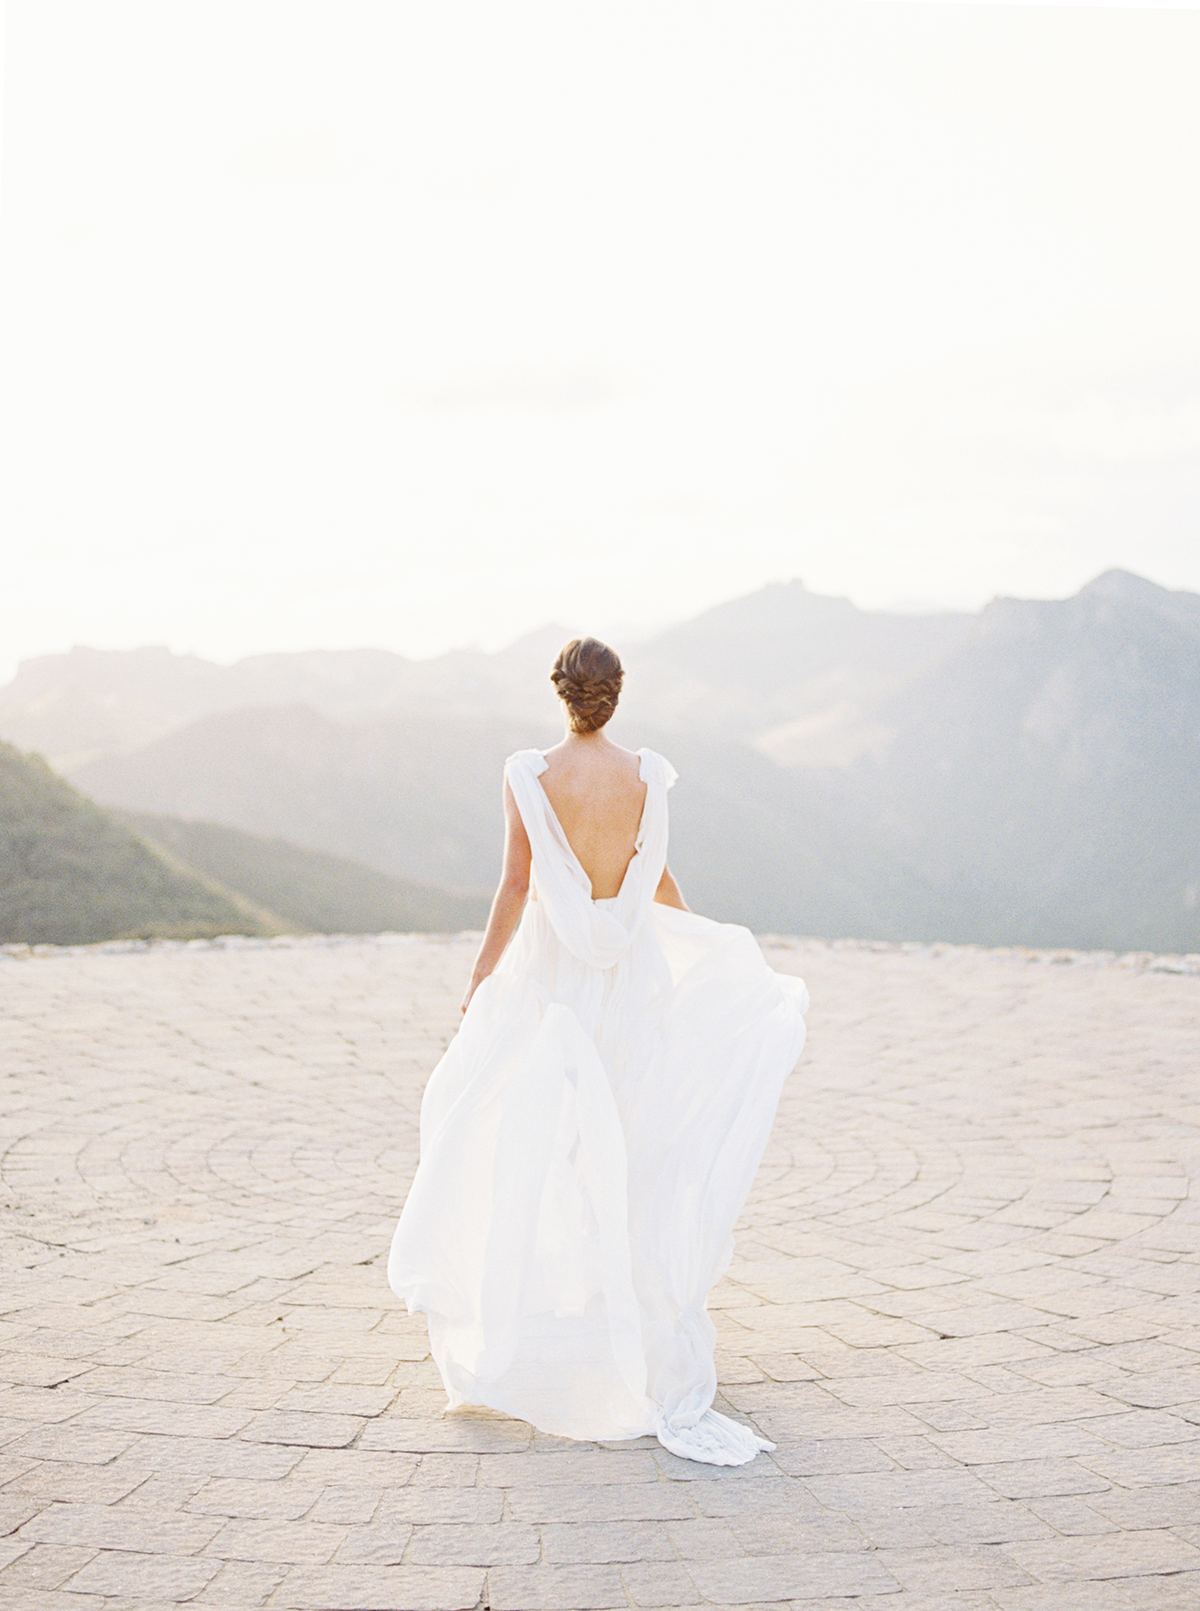 Babsie-Ly-Photography-Malibu-Rocky-Oaks-Wedding-Ideas-Musat-Dress-002